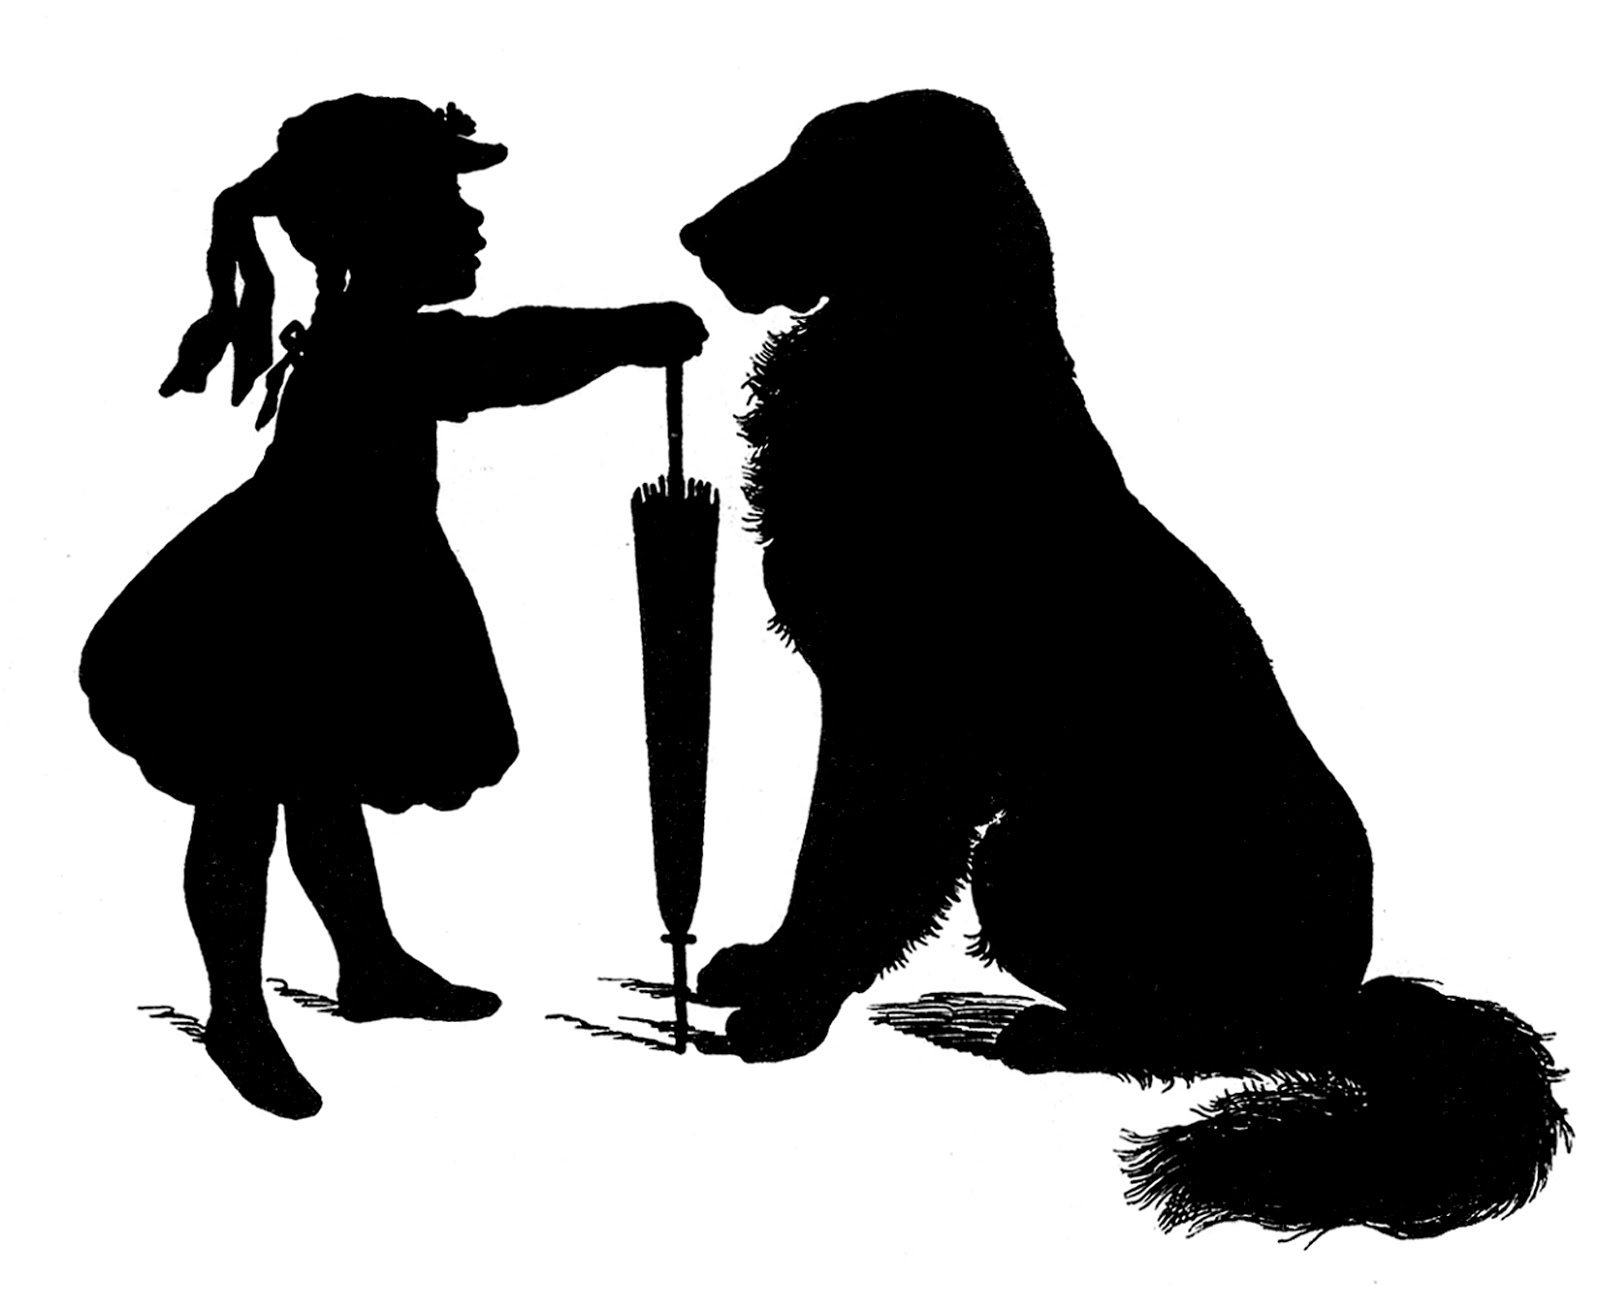 Free Vector Download   Silhouette   Girl With Dog   The Graphics Fairy